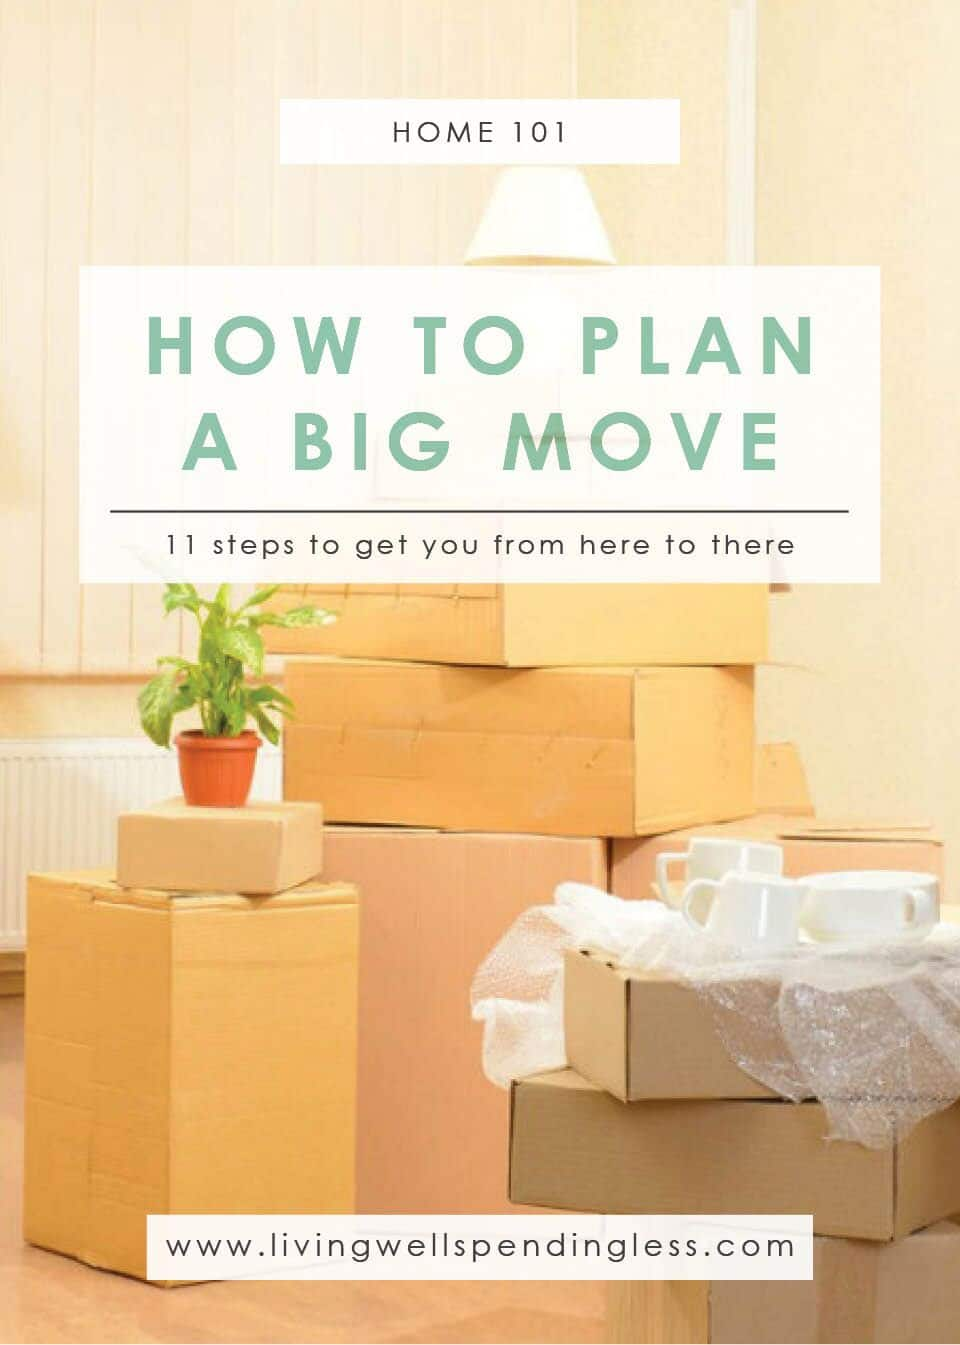 Plan a Big Move | Cleaning & Organizing | Money Saving Tips | Home Purging | Home Organization | Home Planning | Practical Moving Tips | Stressless House Move | Moving to a New Place | Relocating Guide | Moving Checklist